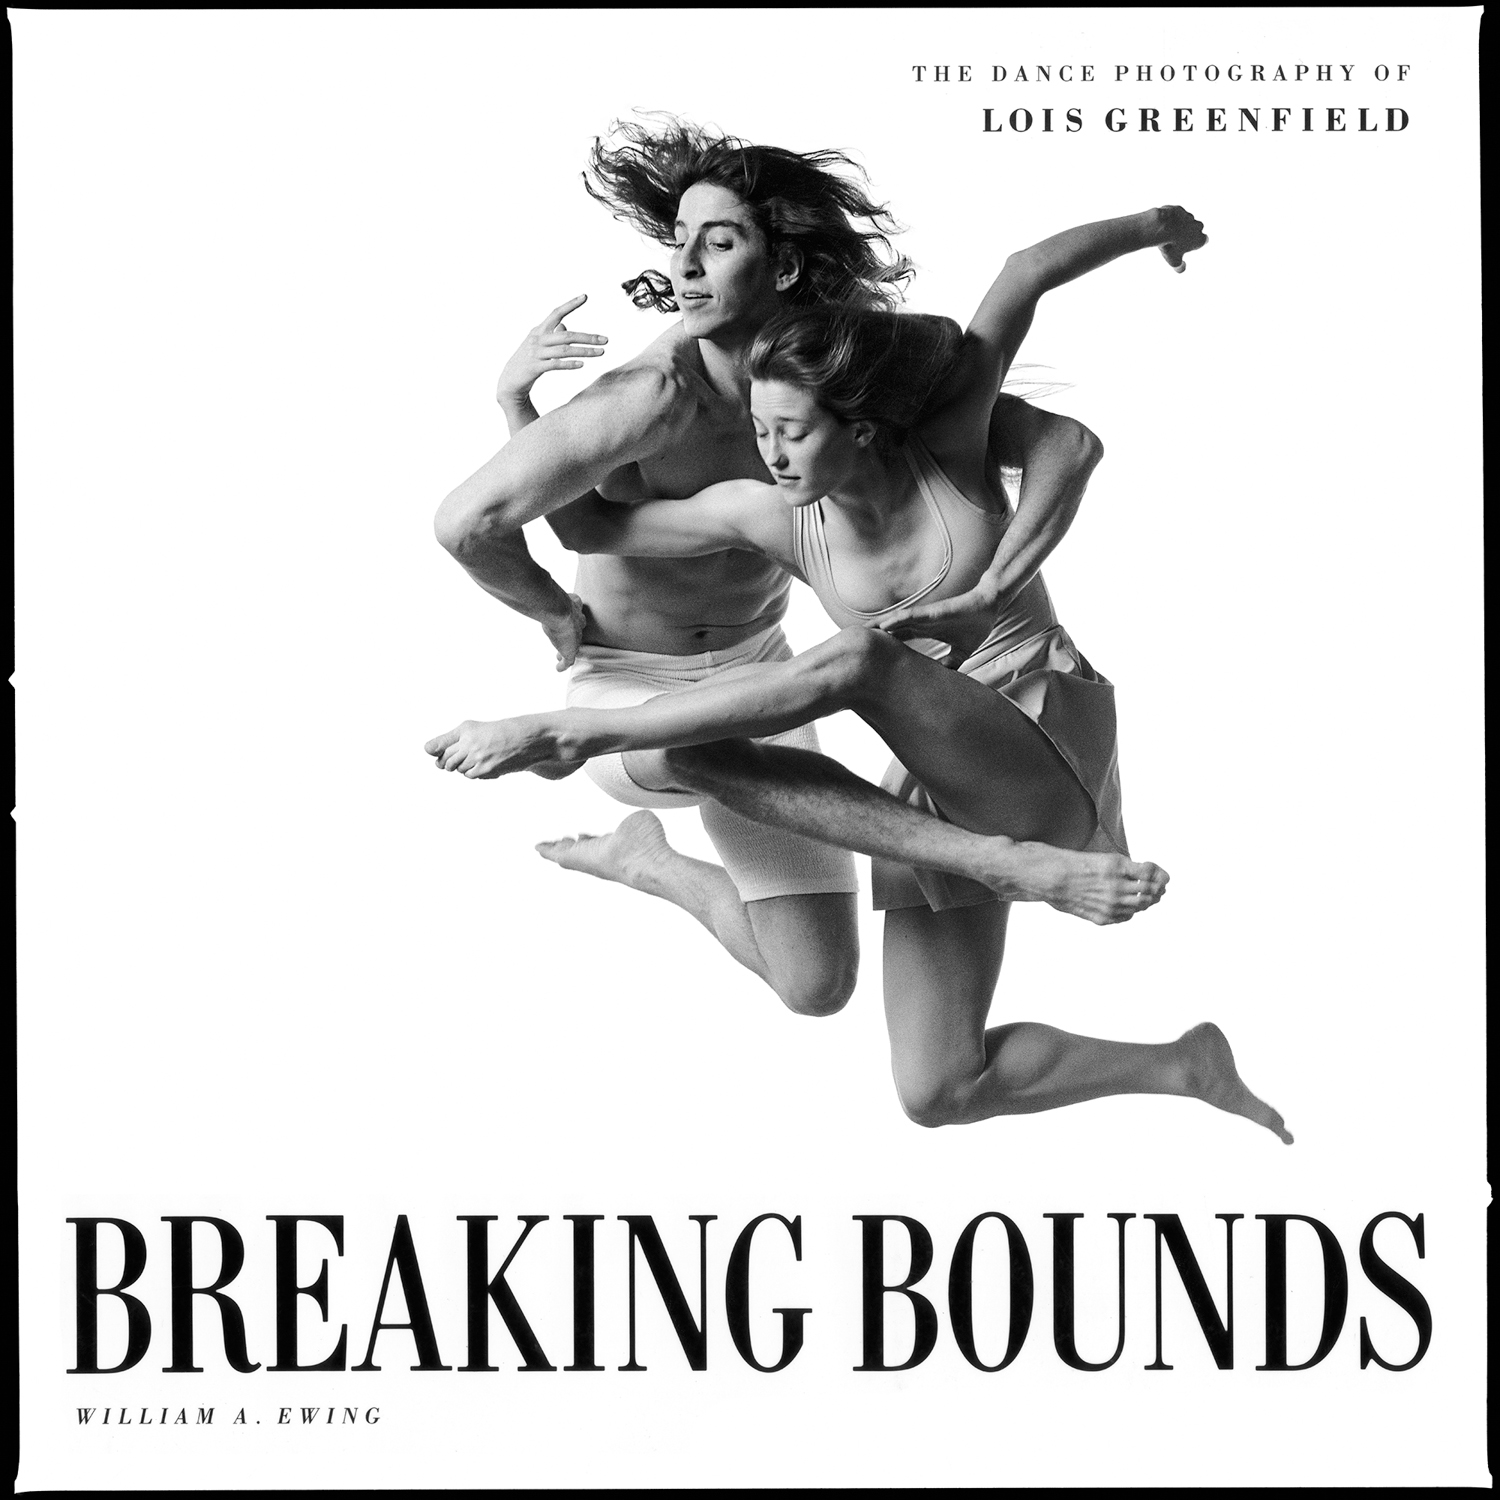 Breaking Bounds  (1992) is Greenfield's first book, showcasing her groundbreaking images of dance as can never be seen on the stage . Unrestrained by choreography, the dancers in her photographs defy both logic and gravity.   William A. Ewing and Lois Greenfield. Breaking Bounds. Chronicle Books (USA), Thames & Hudson (UK), 1992.